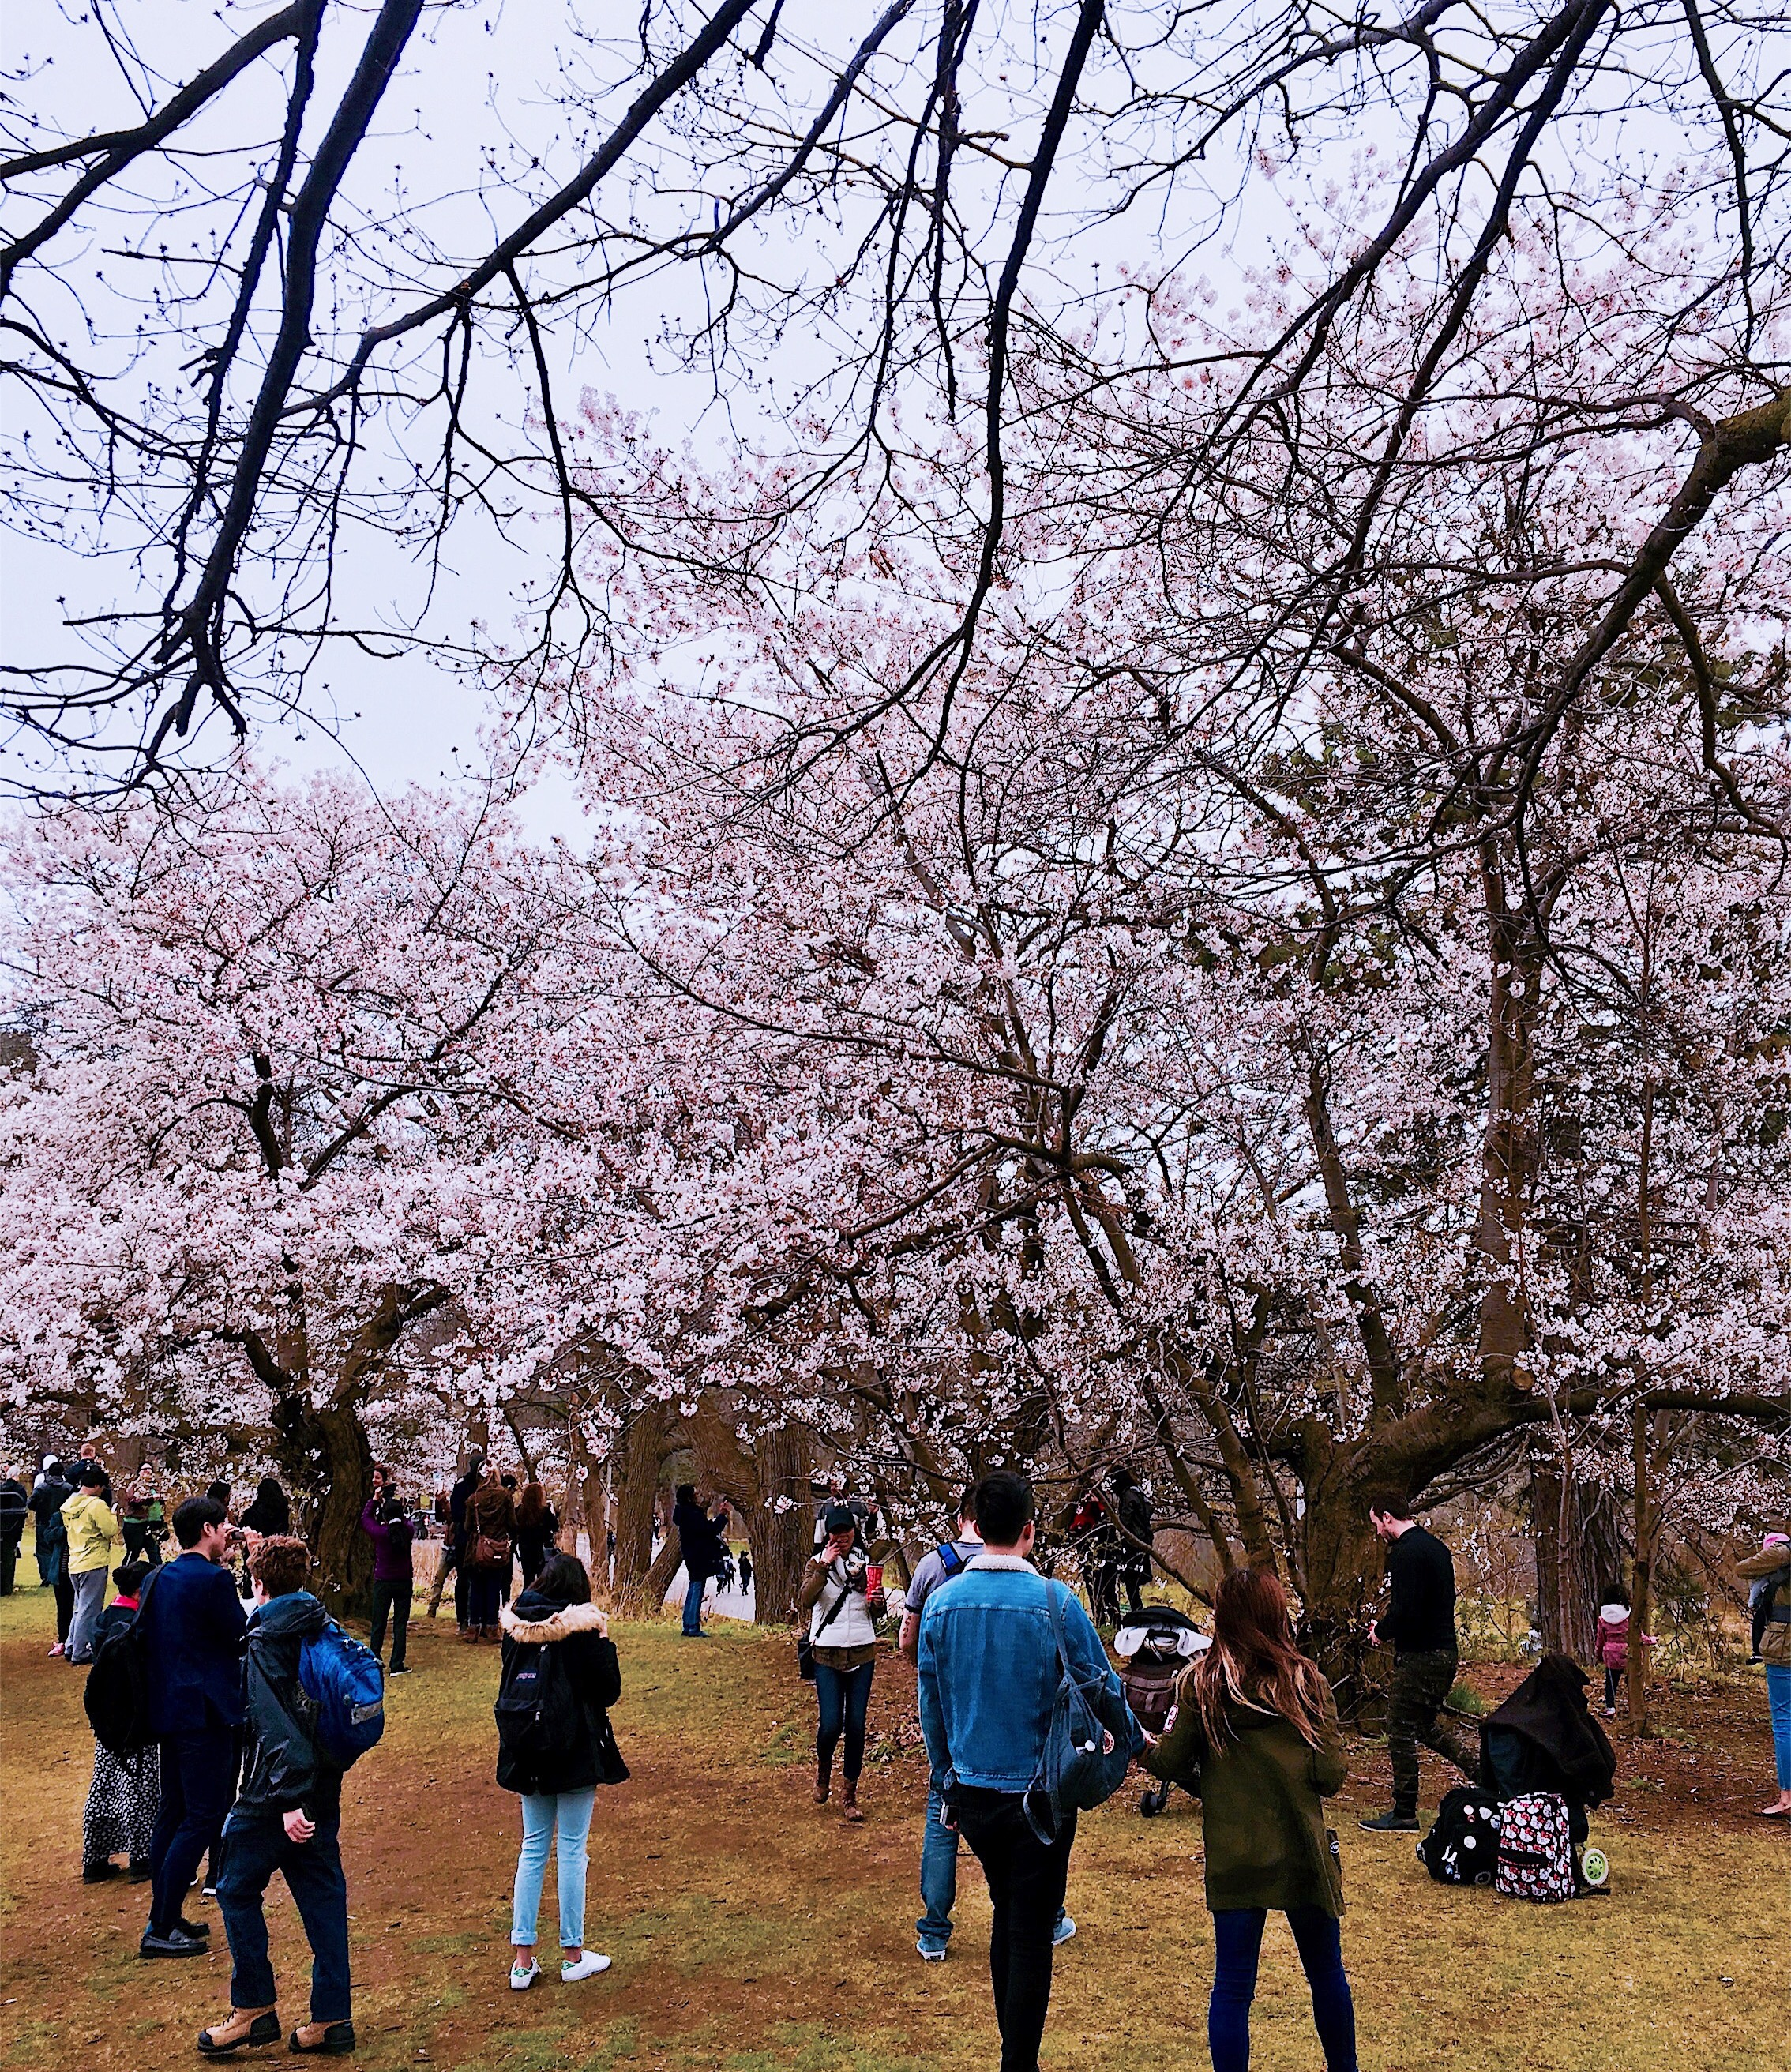 Nature Shots & Cherry Blossoms - High Park